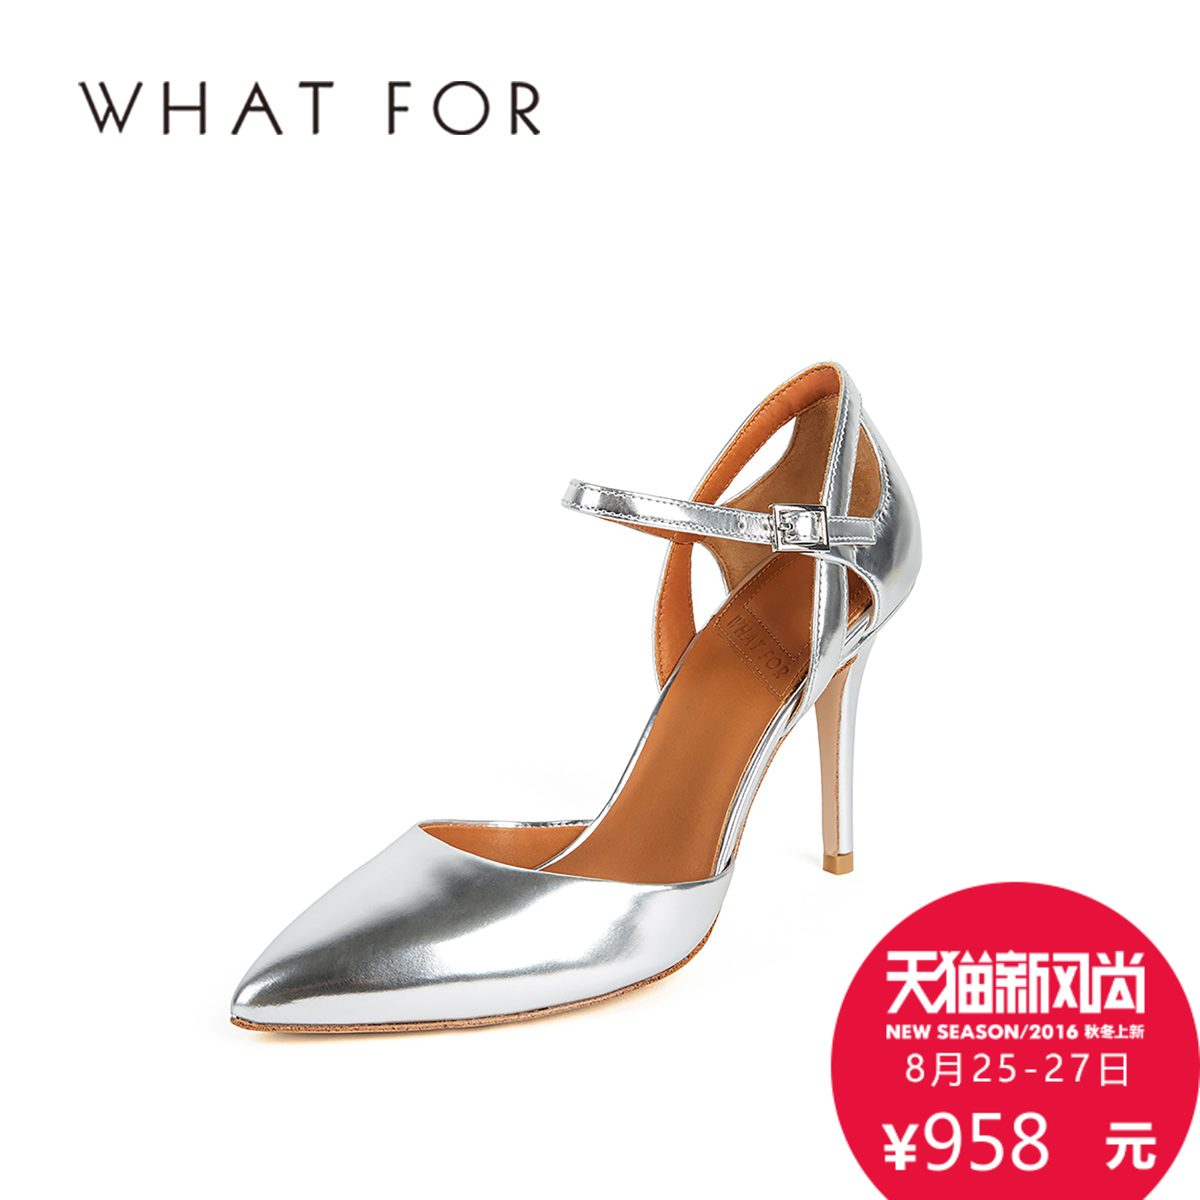 What for spring and summer new ms. leather shoes hollow pointed high heels shoes WG133L01059